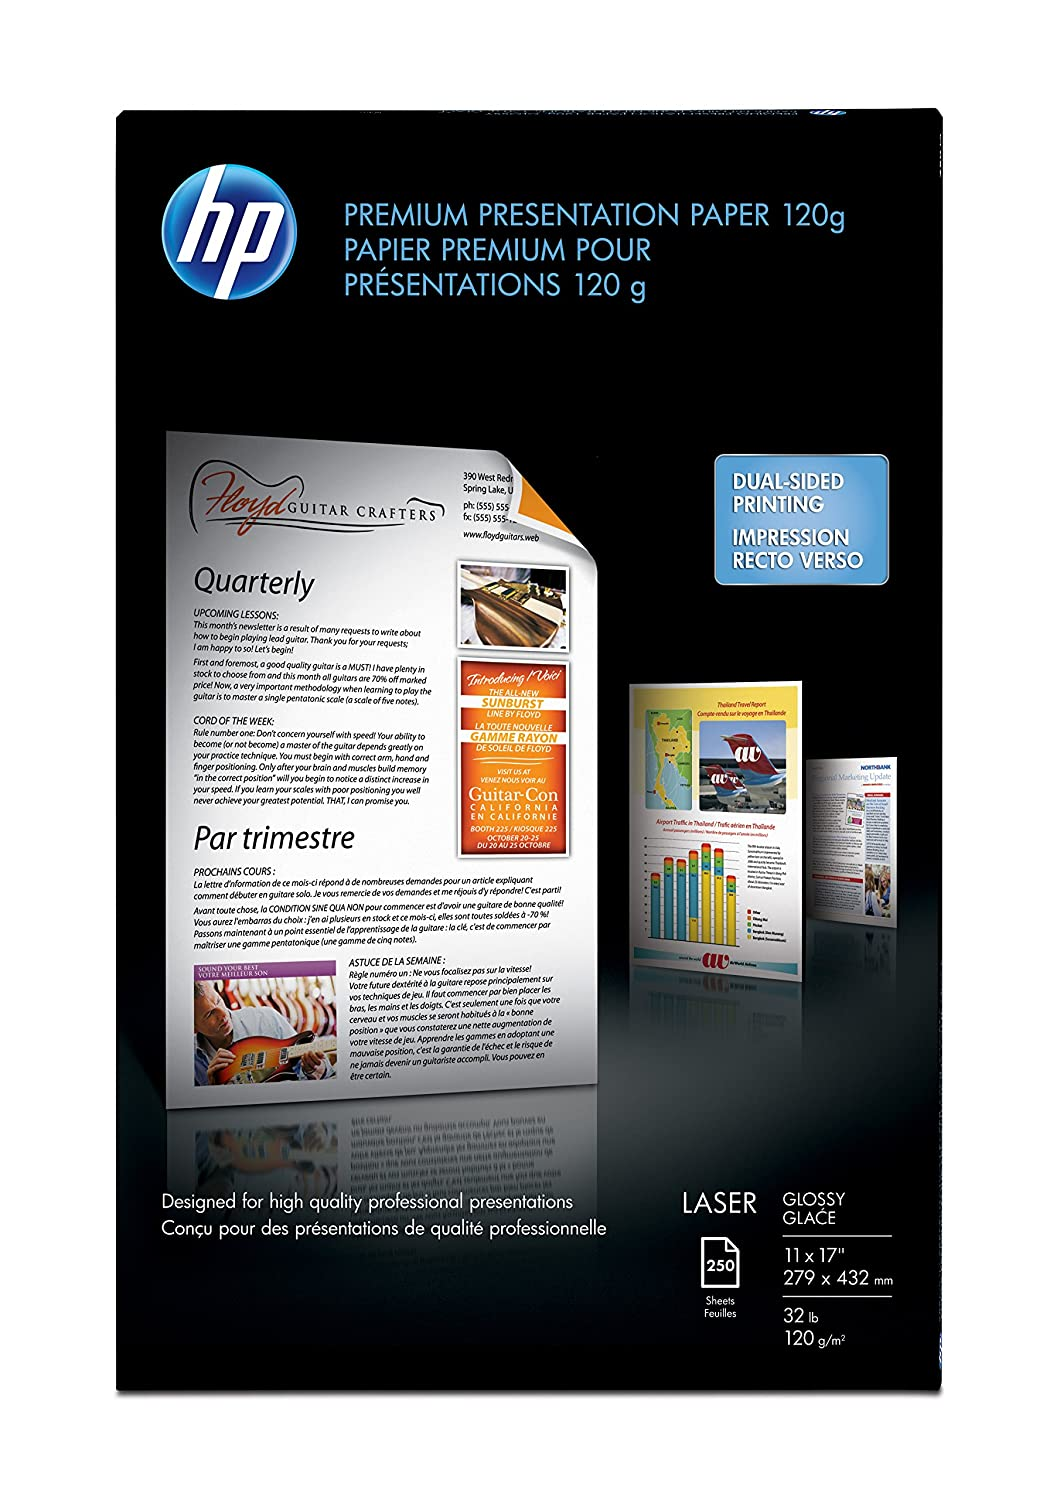 Hp hp color laser printers 11x17 - Amazon Com Hp Color Laser Presentation Paper Glossy 250 Sheets 11 X 17 Inches Photo Quality Paper Office Products